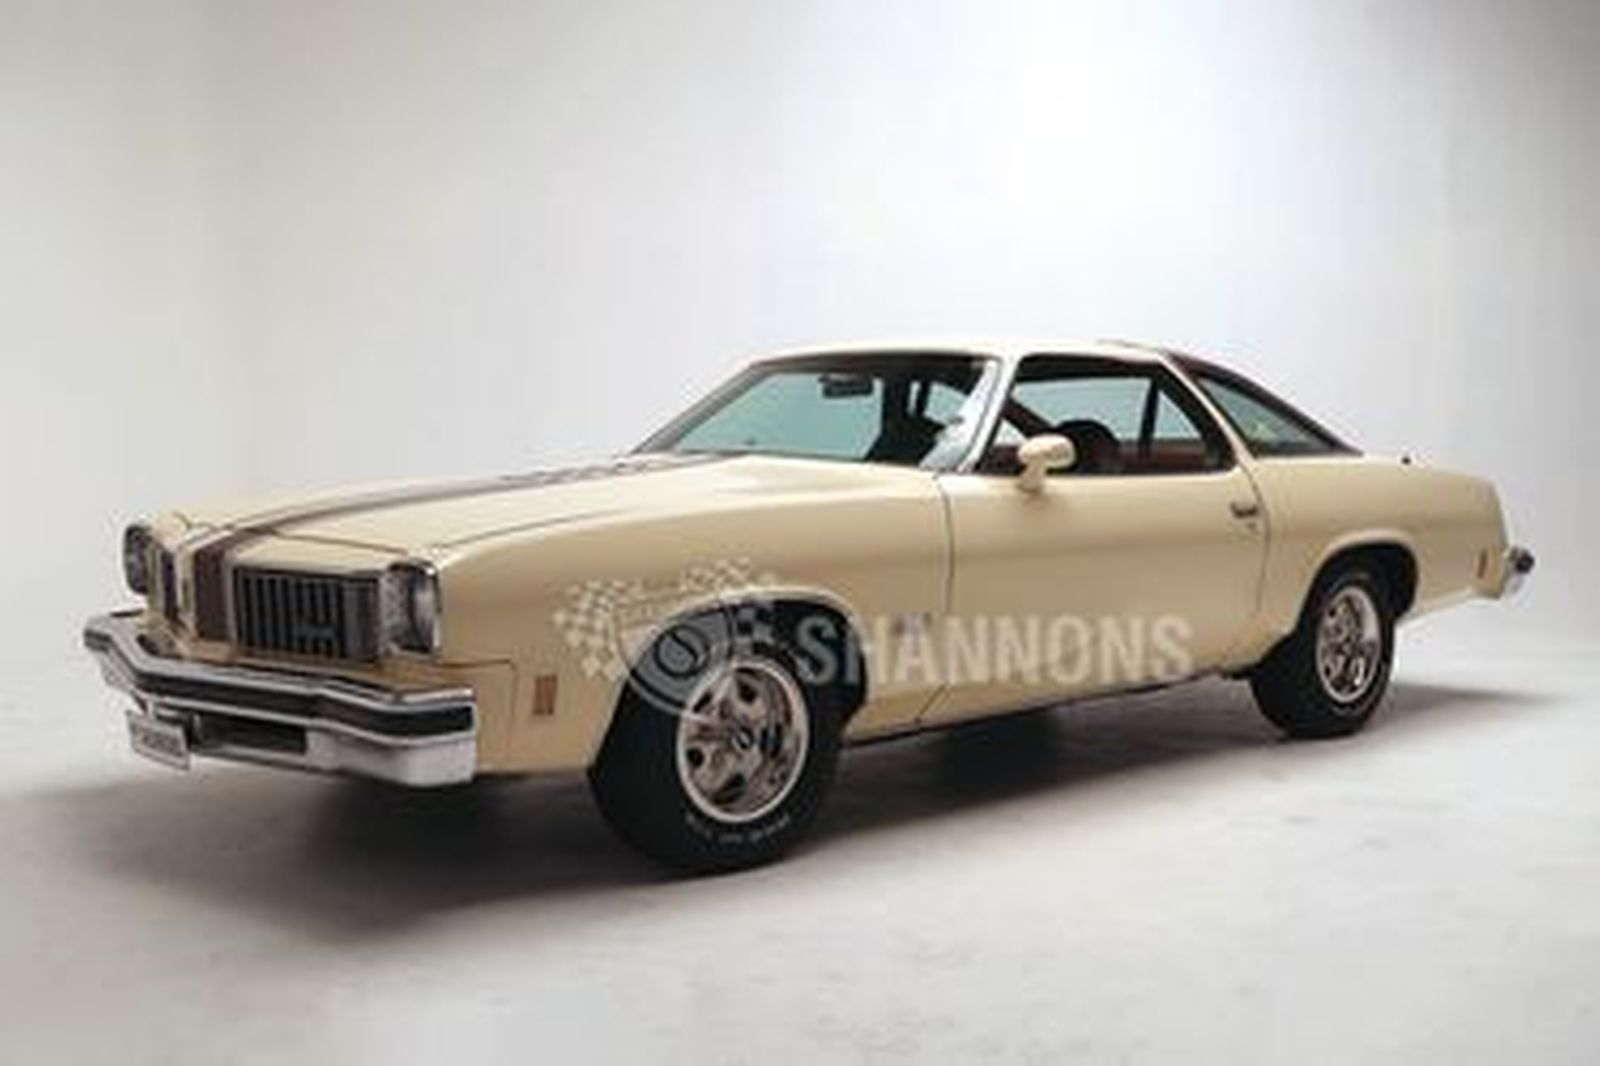 Oldsmobile Cutlass S Coupe (LHD)